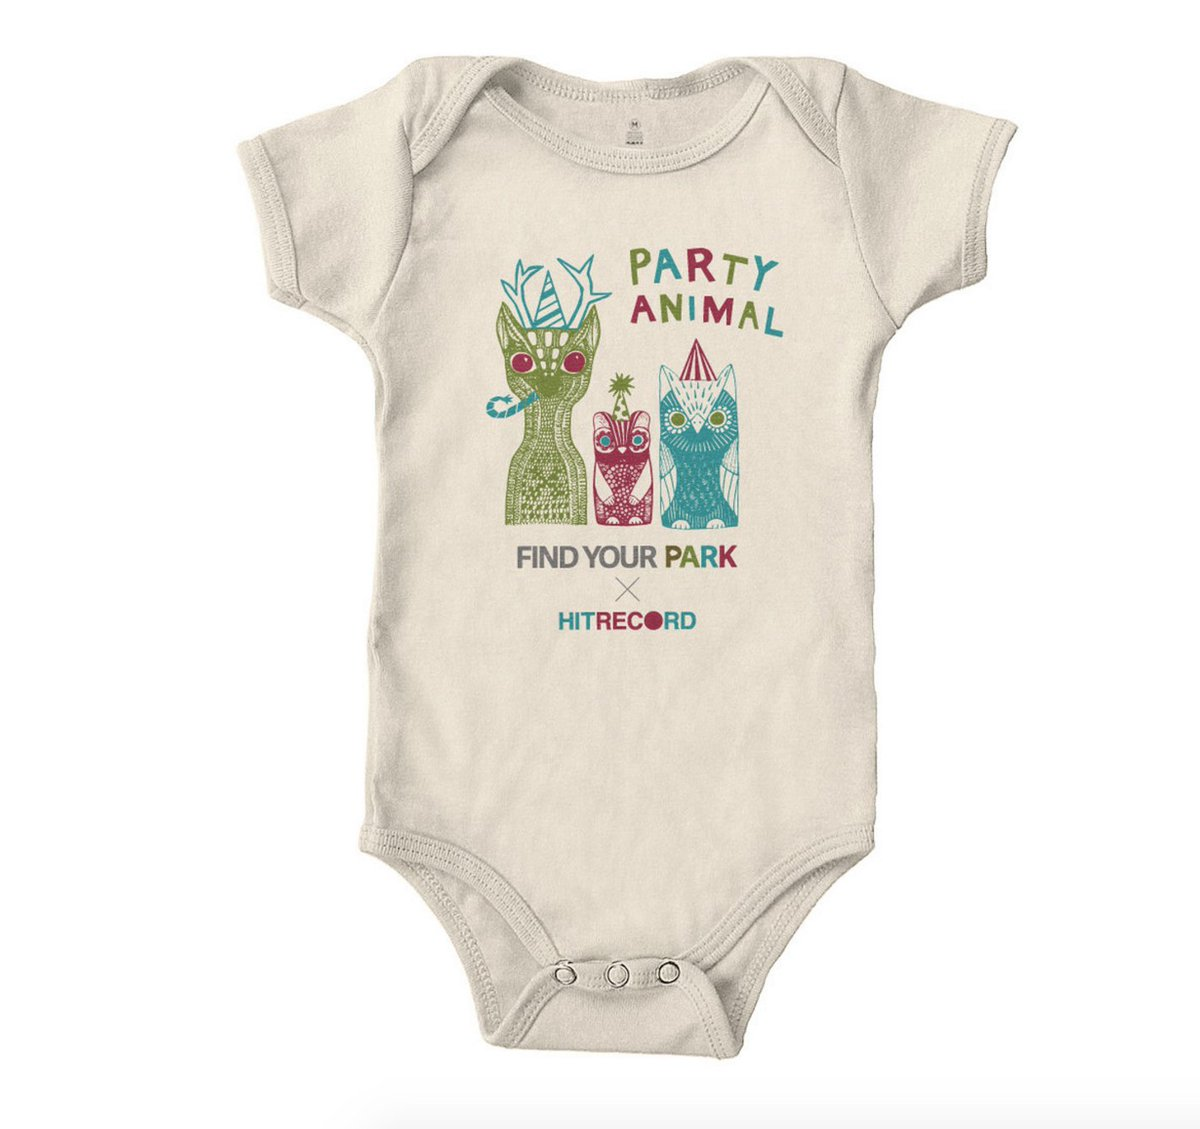 I'm very pleased to say that our first ever baby onesie is made of 100% organic cotton.. https://t.co/JSW8pLd50K https://t.co/TXMMdjy7eC